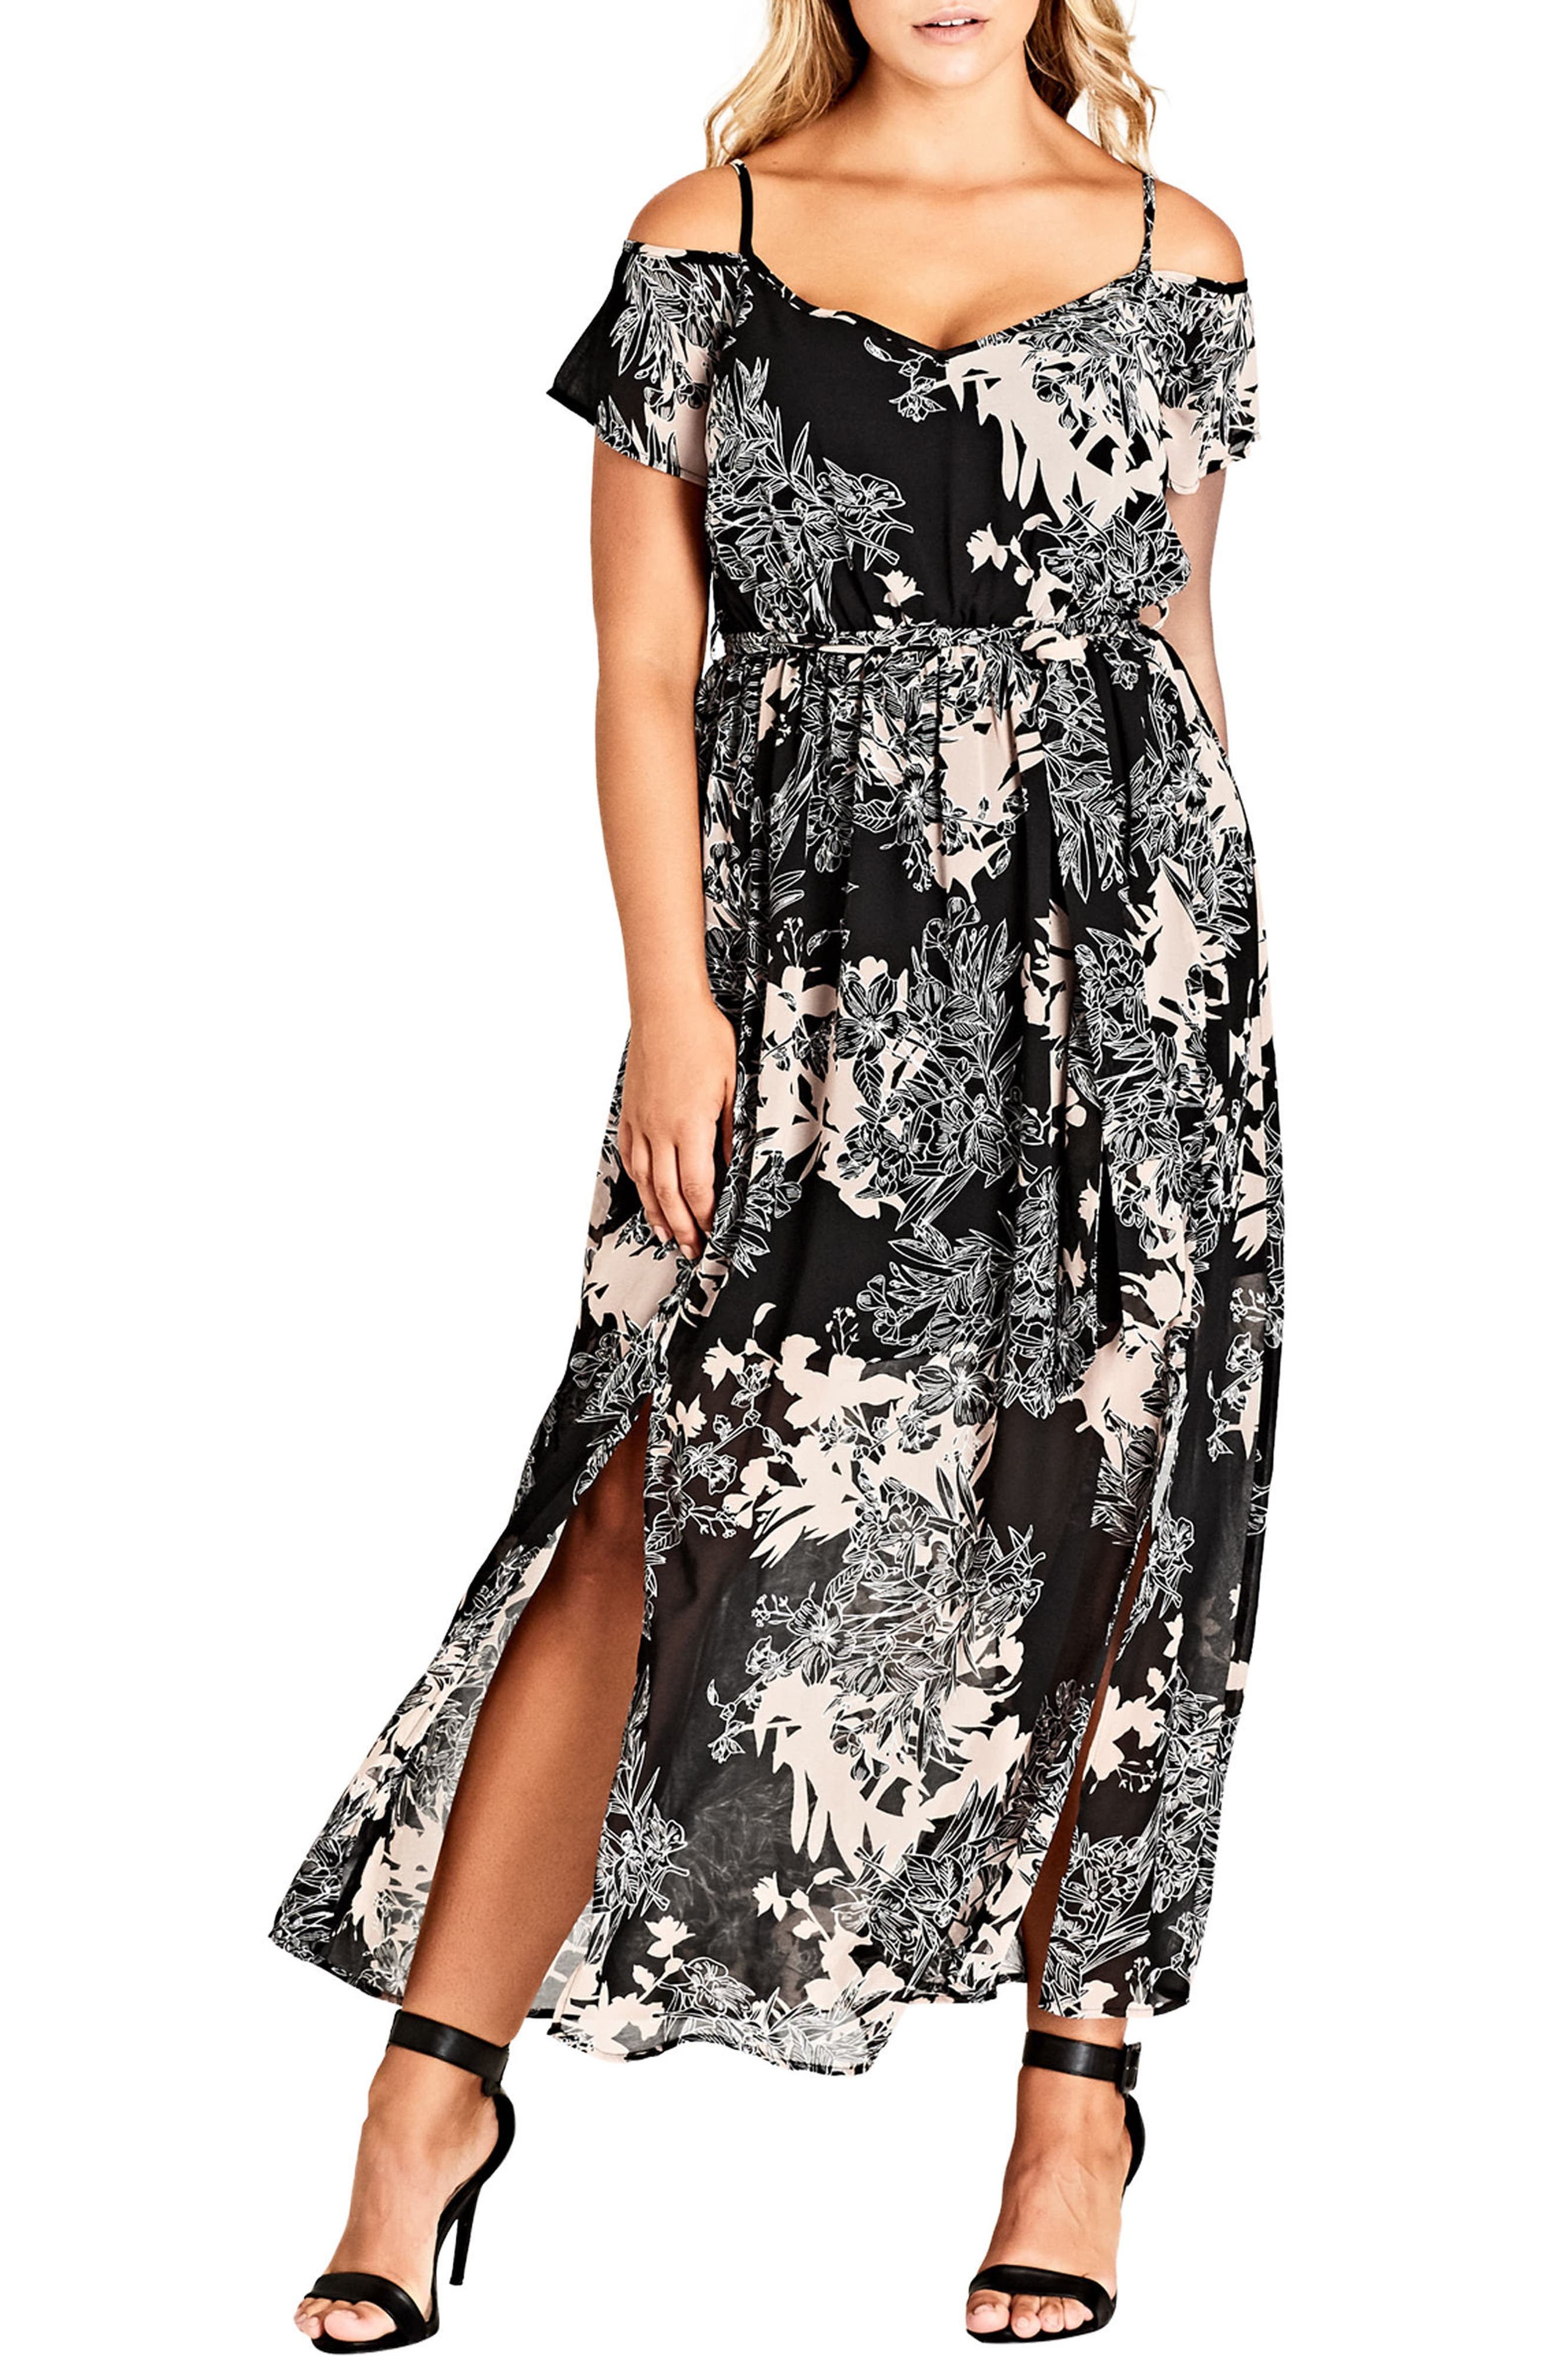 Floral Shadow Cold Shoulder Maxi Dress,                             Main thumbnail 1, color,                             SHADOW FLORAL